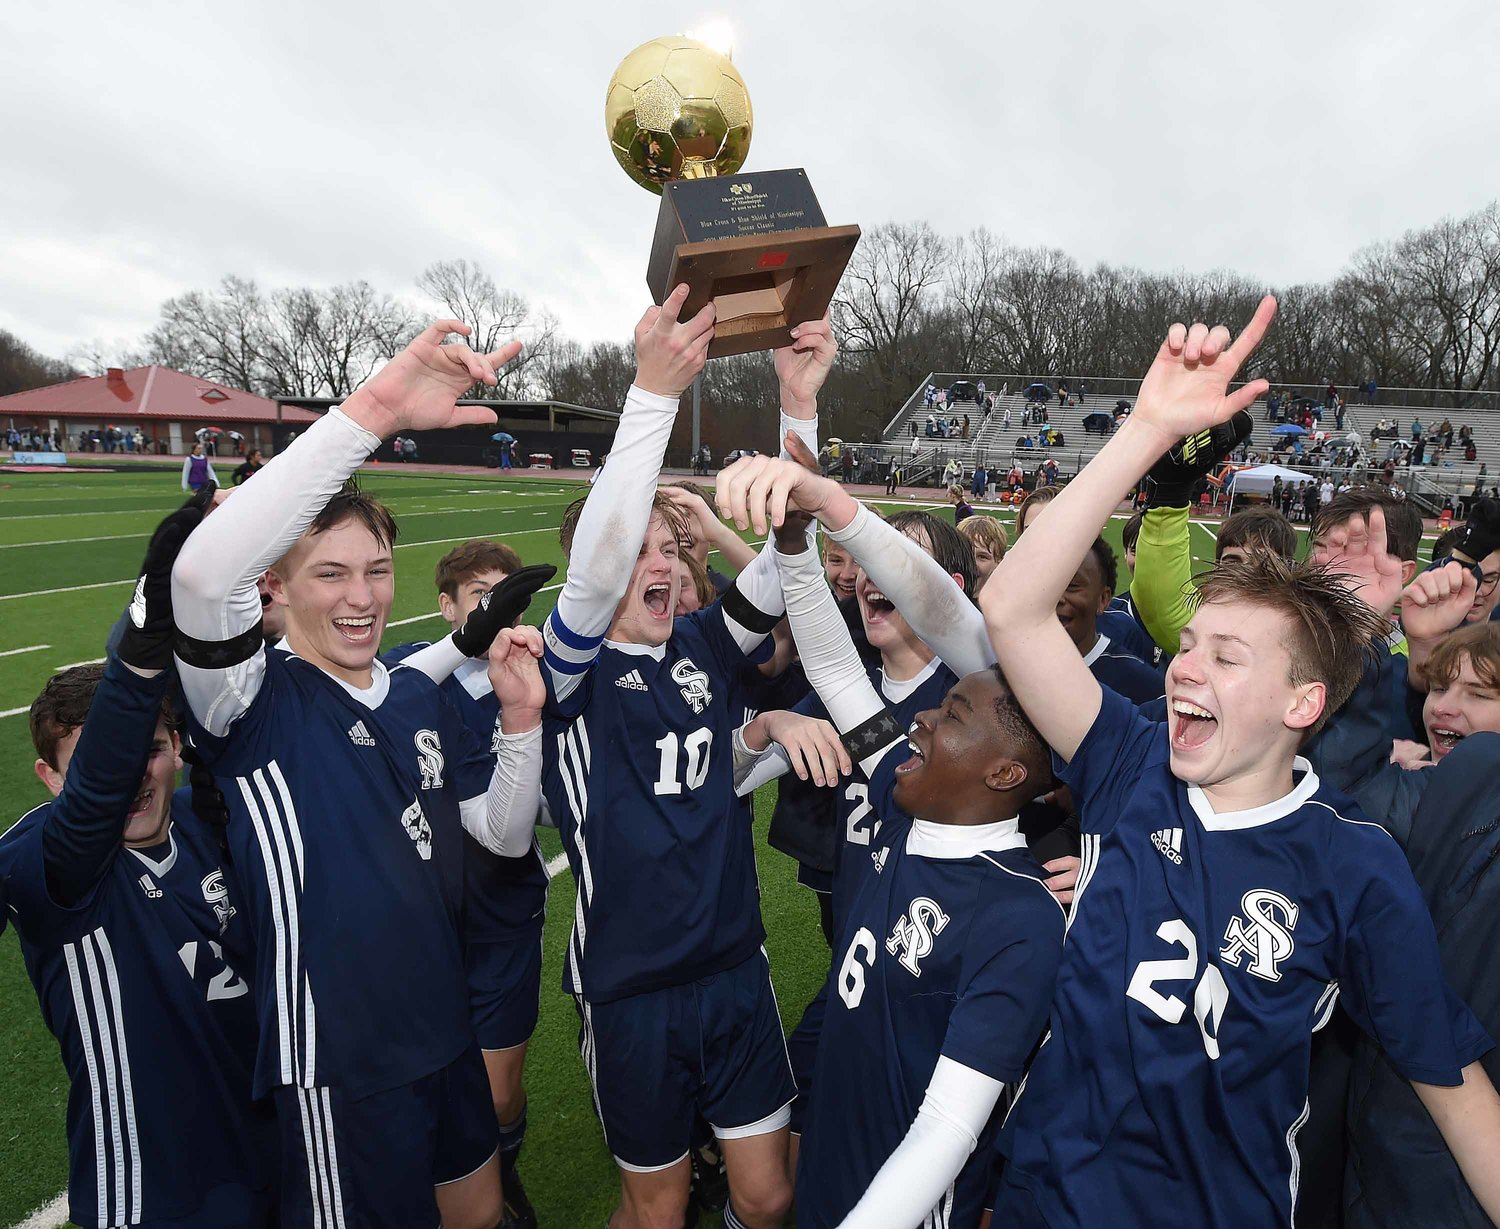 The St. Andrew's Saints celebrate after beating Clarkdale in the MHSAA Class I State Soccer Championships on Saturday, February 6, 2021, at Clinton High School in Clinton, Miss. Pictured, left to right, are Jack Crawford, Hudson Bataille, Rolen Fanning, Jackson Bataille, Dami Oluwatade, Merritt DeVoss, and Nico Buford.